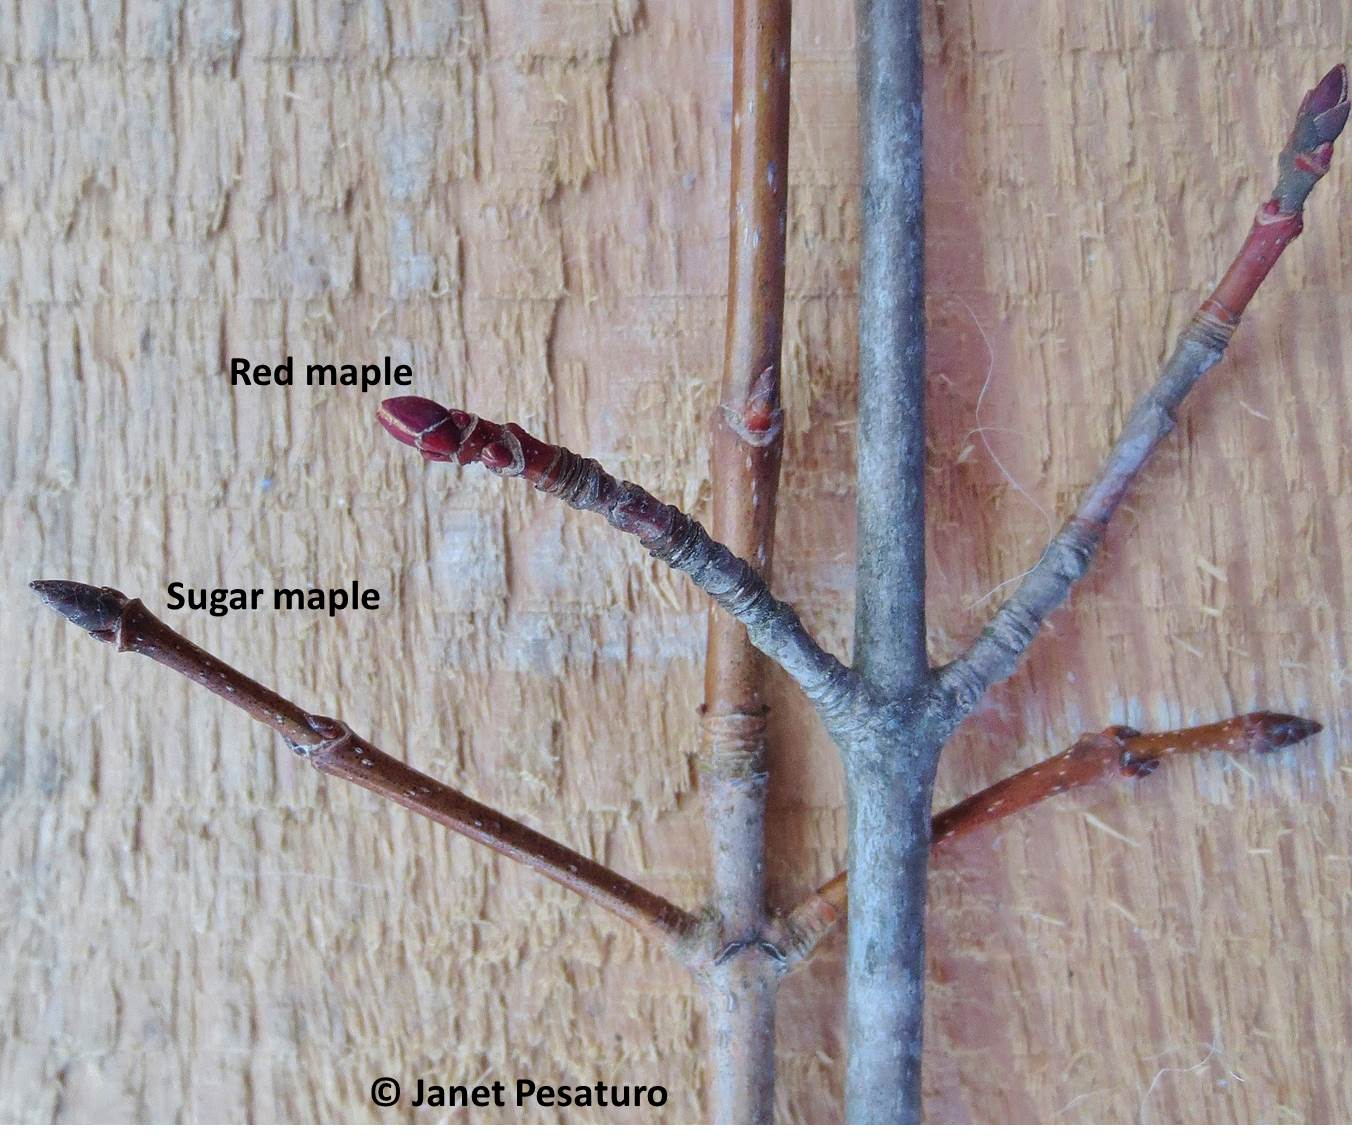 How do you identify types of maple trees?